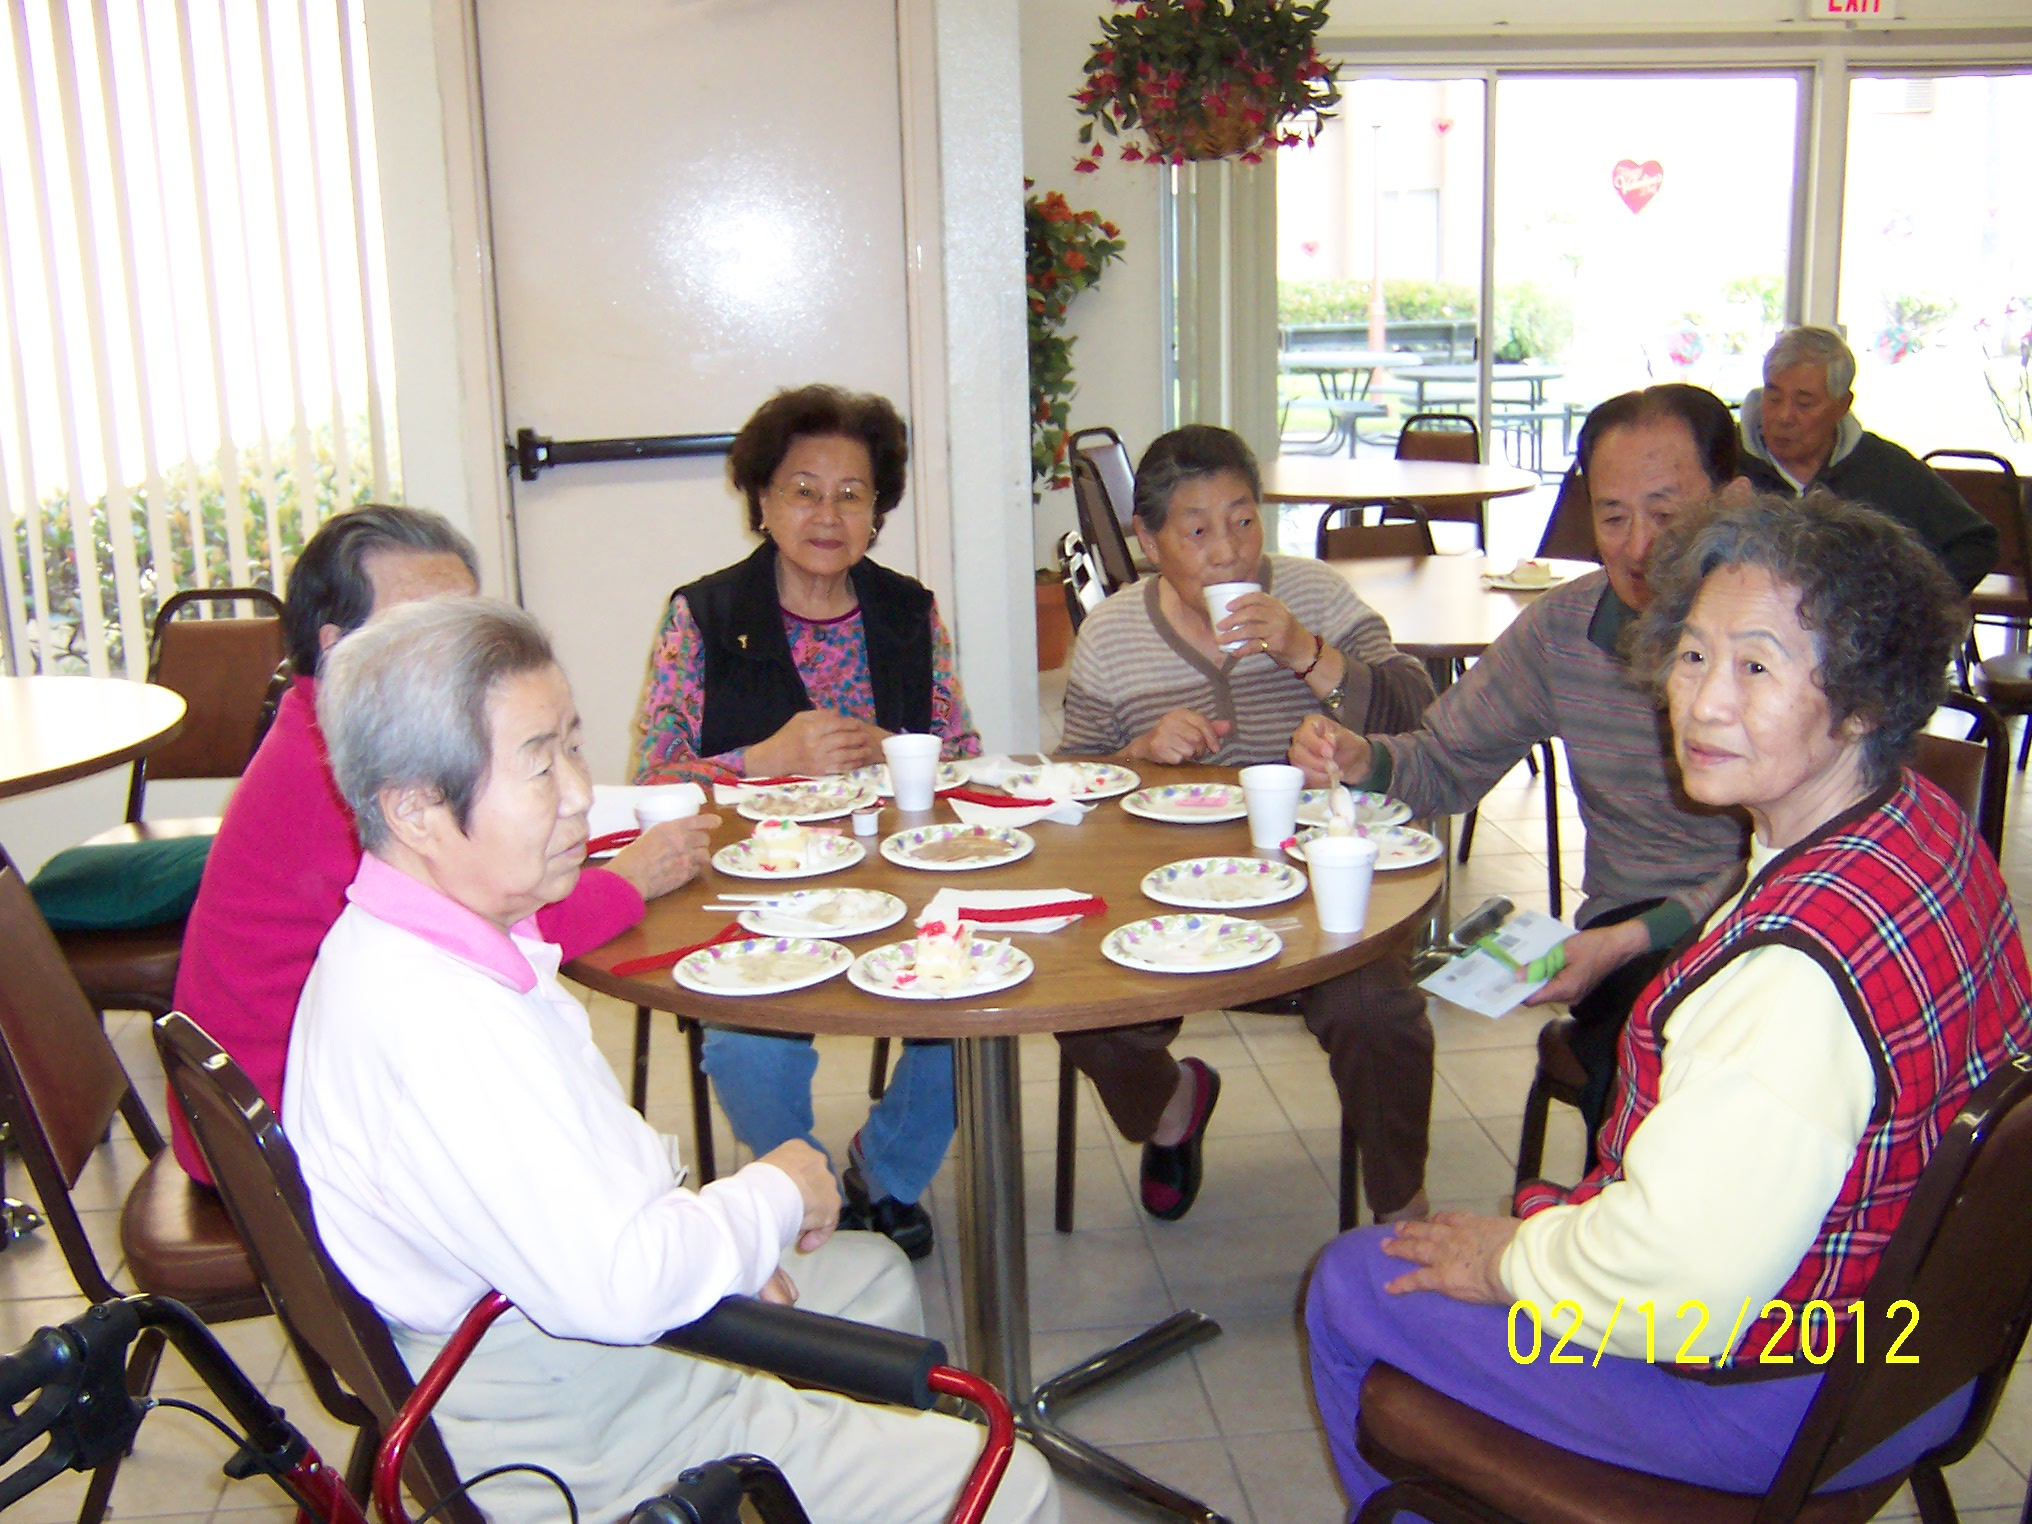 2012-02-12_WADY-Team-Party-for-Frail-Seniors_0033.JPG